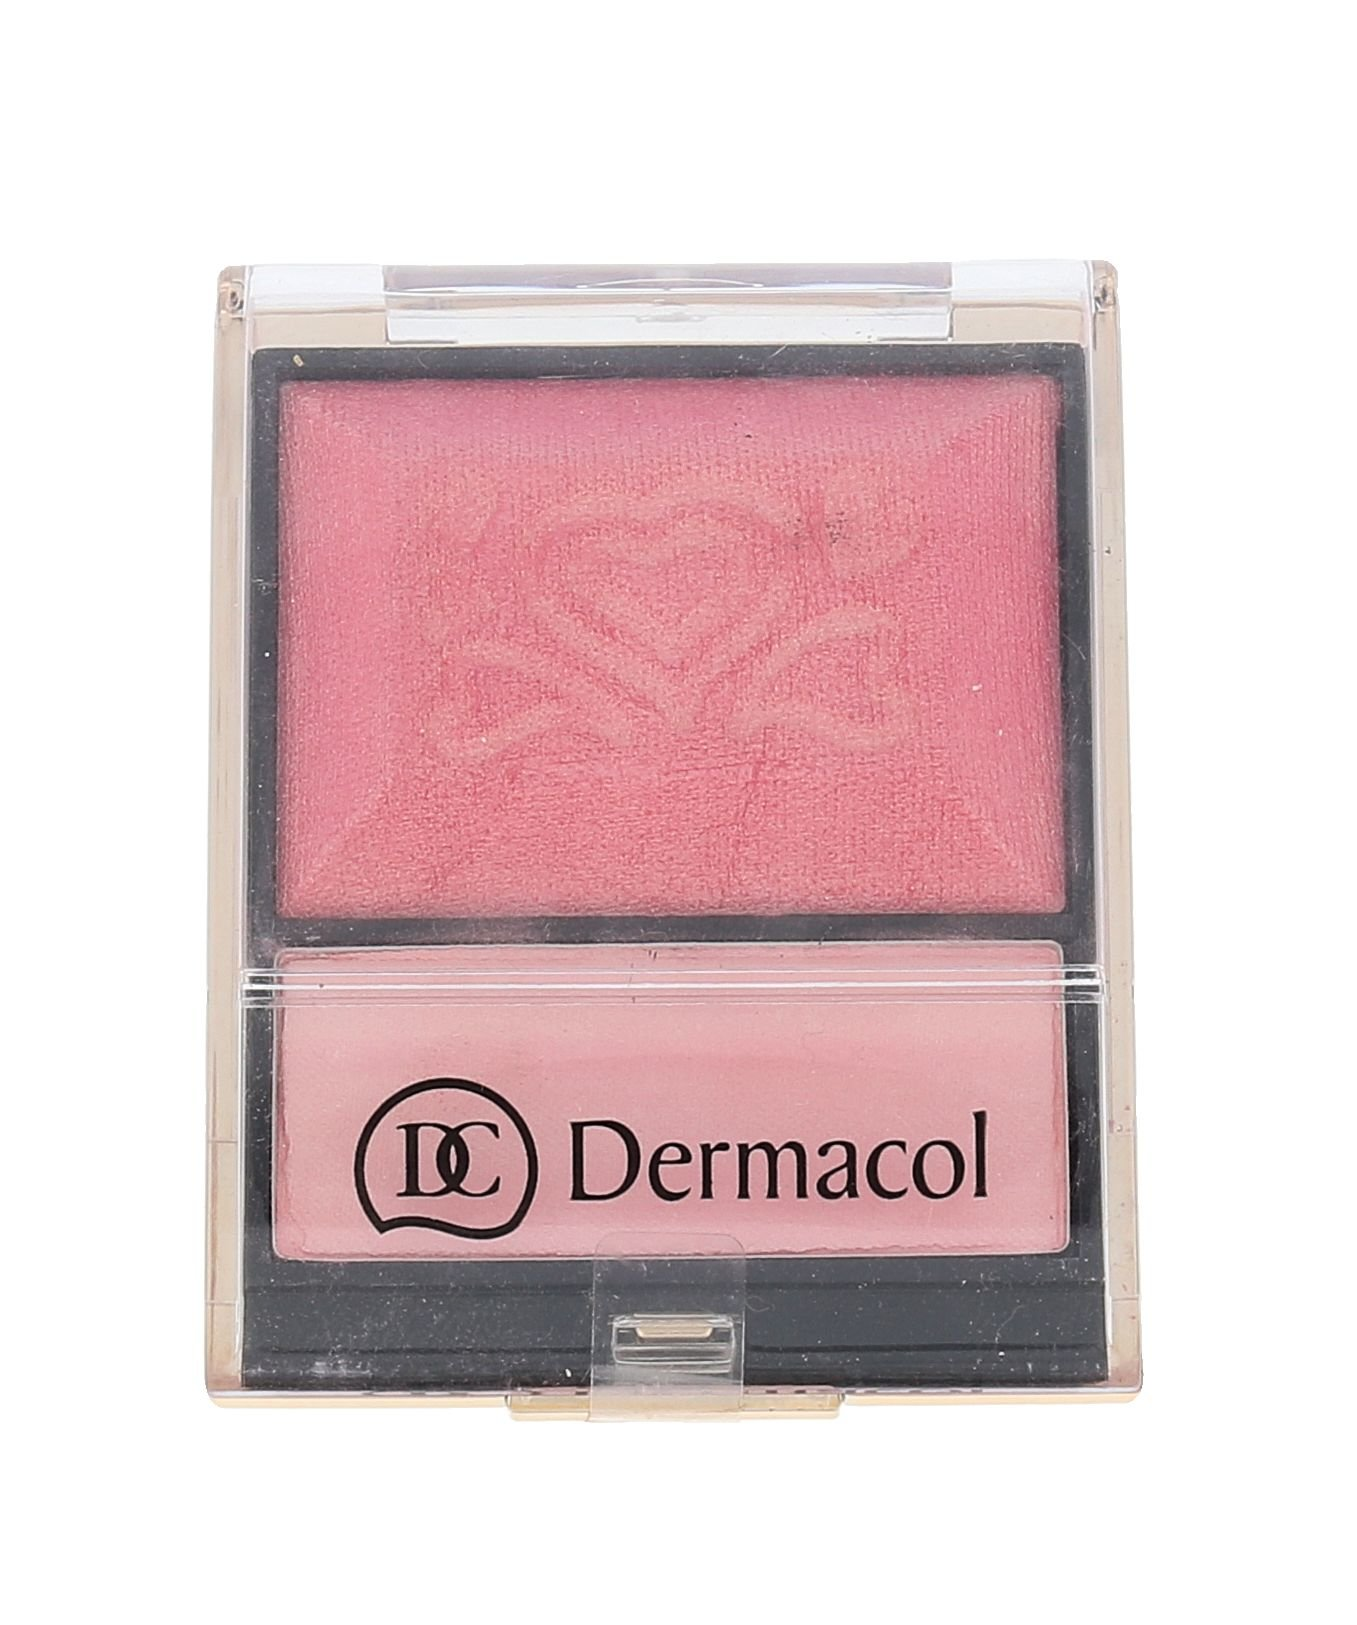 Dermacol Blush & Illuminator Cosmetic 9ml 8